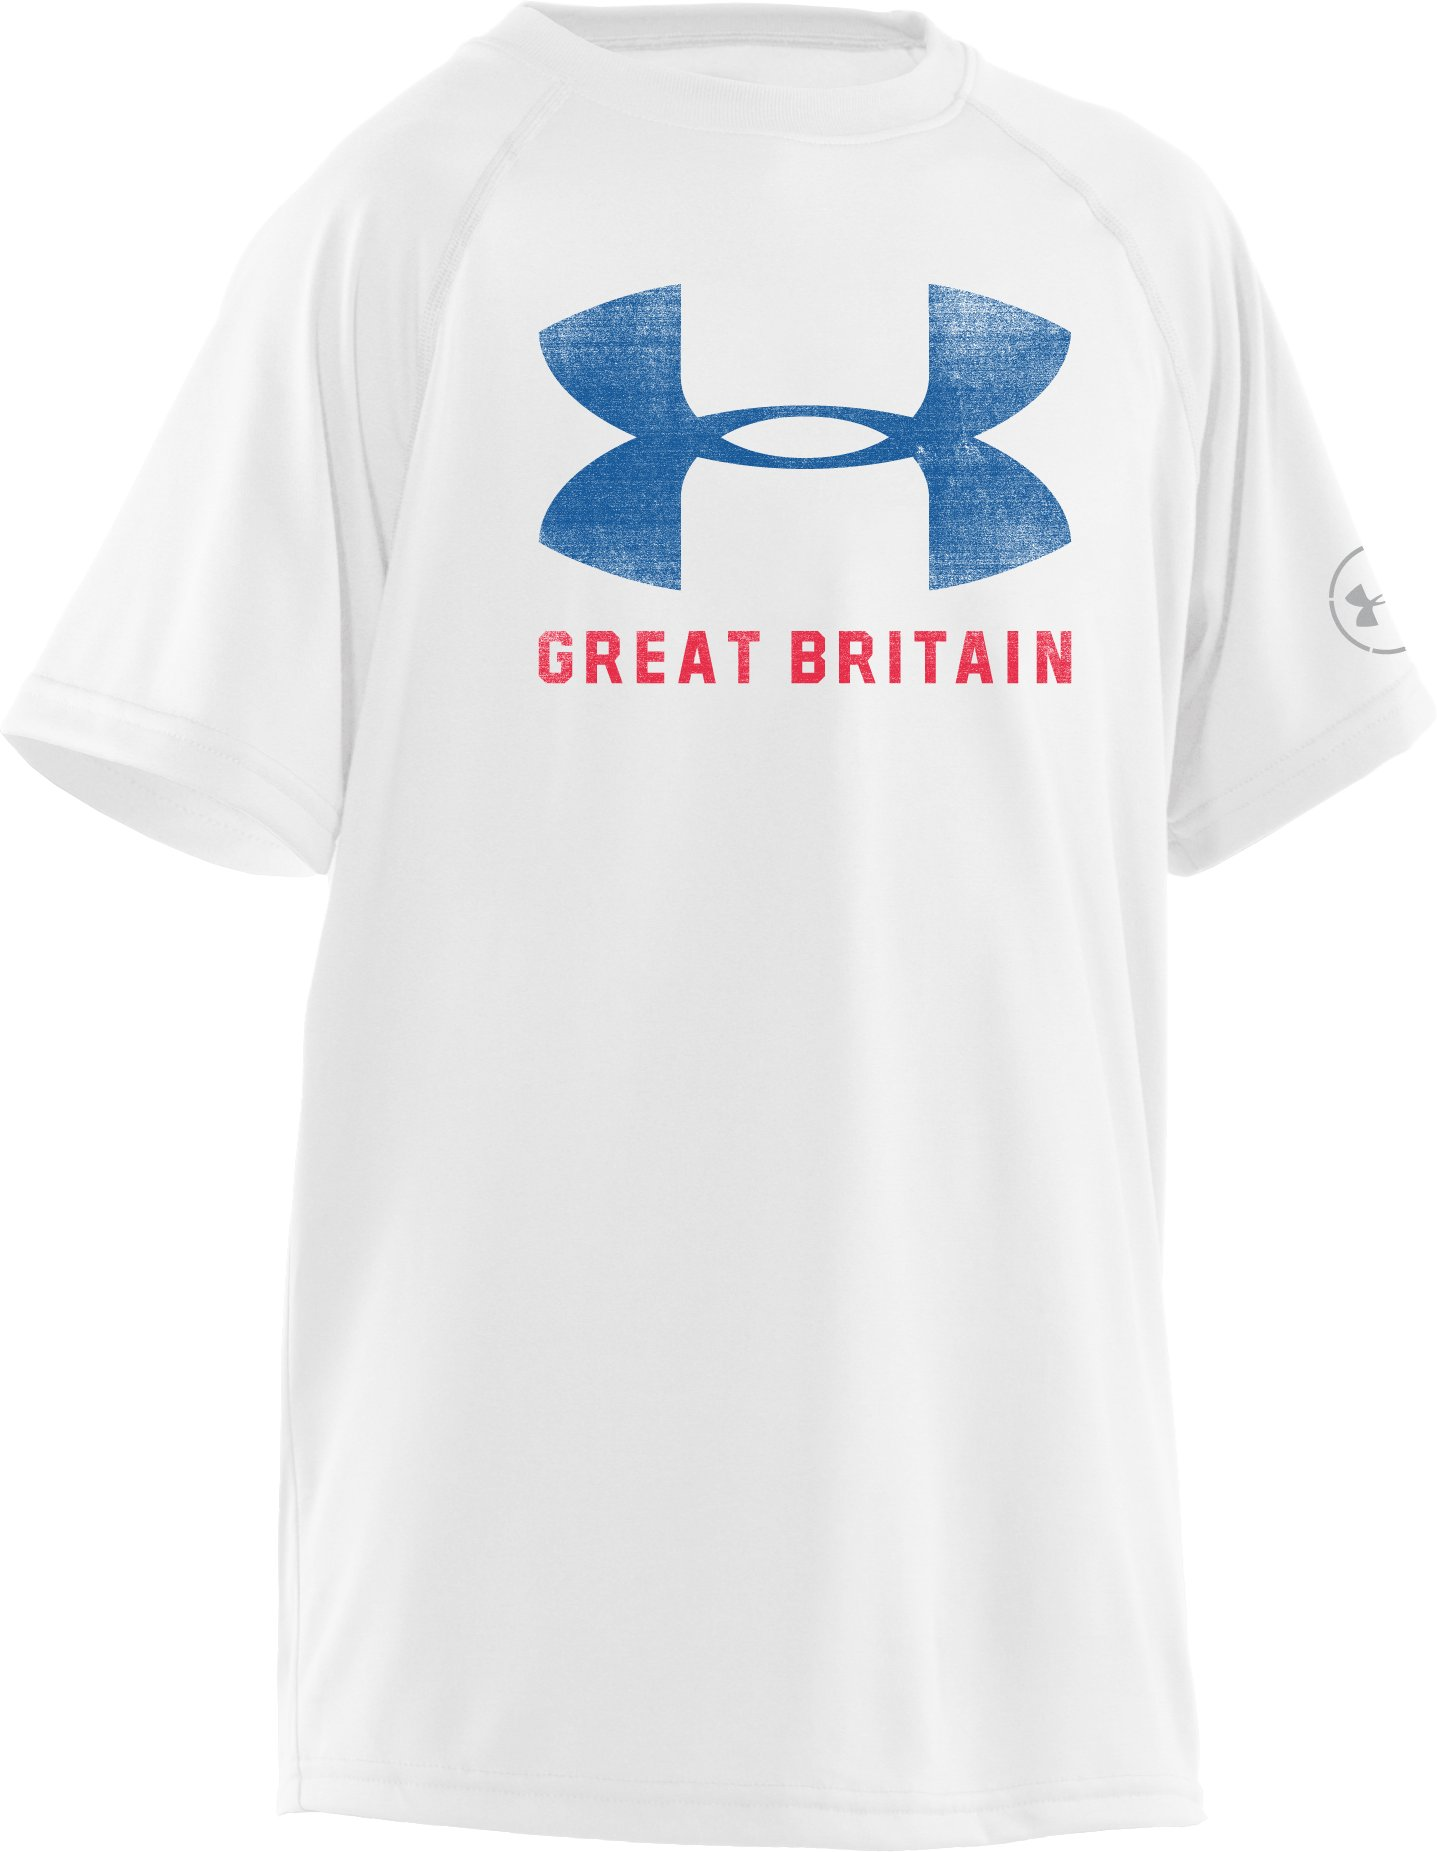 Boys' Great Britain Pride T-Shirt, White